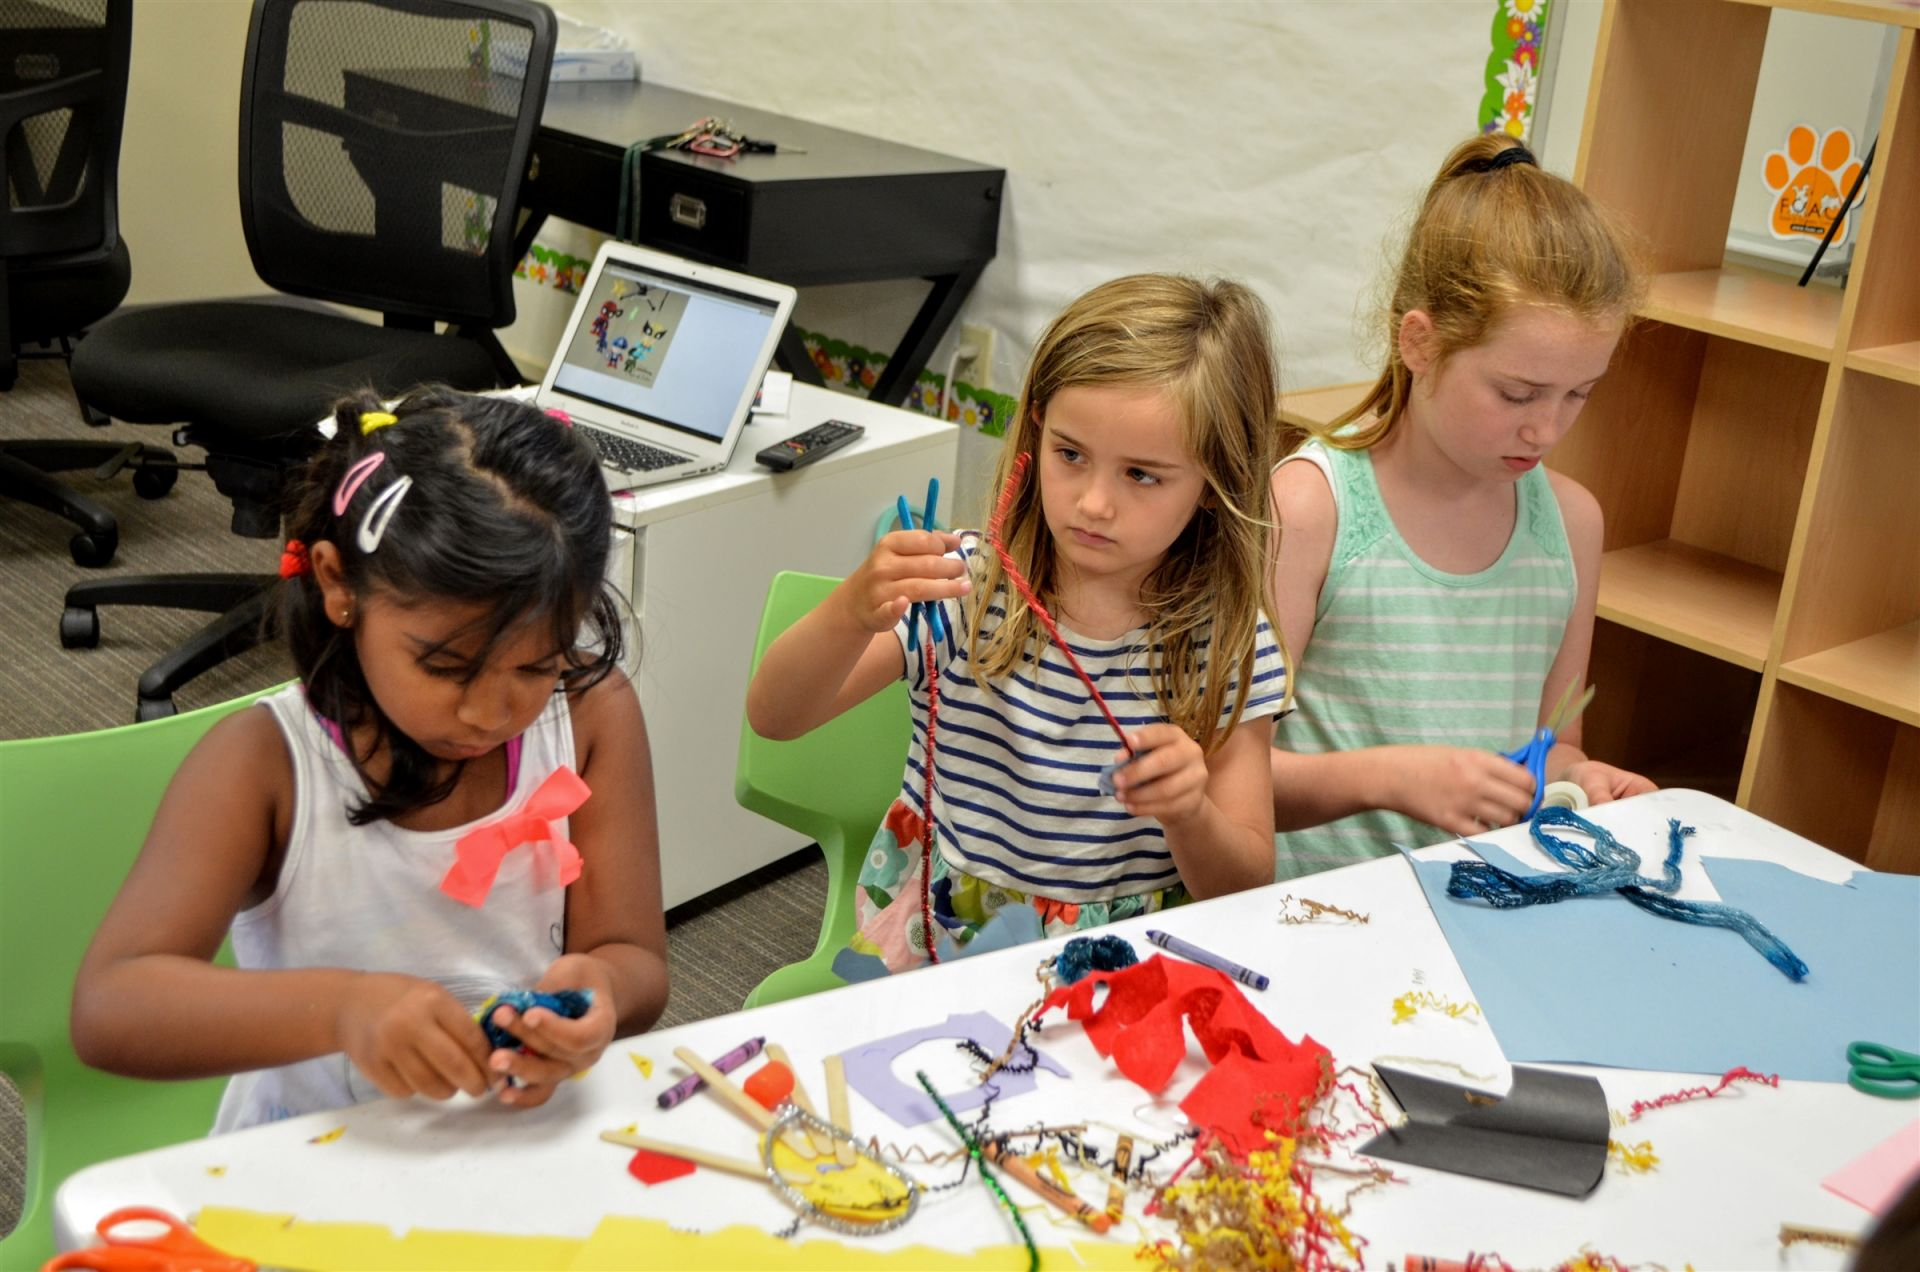 Maker Camp for K-1st grade is a colorful and engaging mix of making, art, and relationship-building.